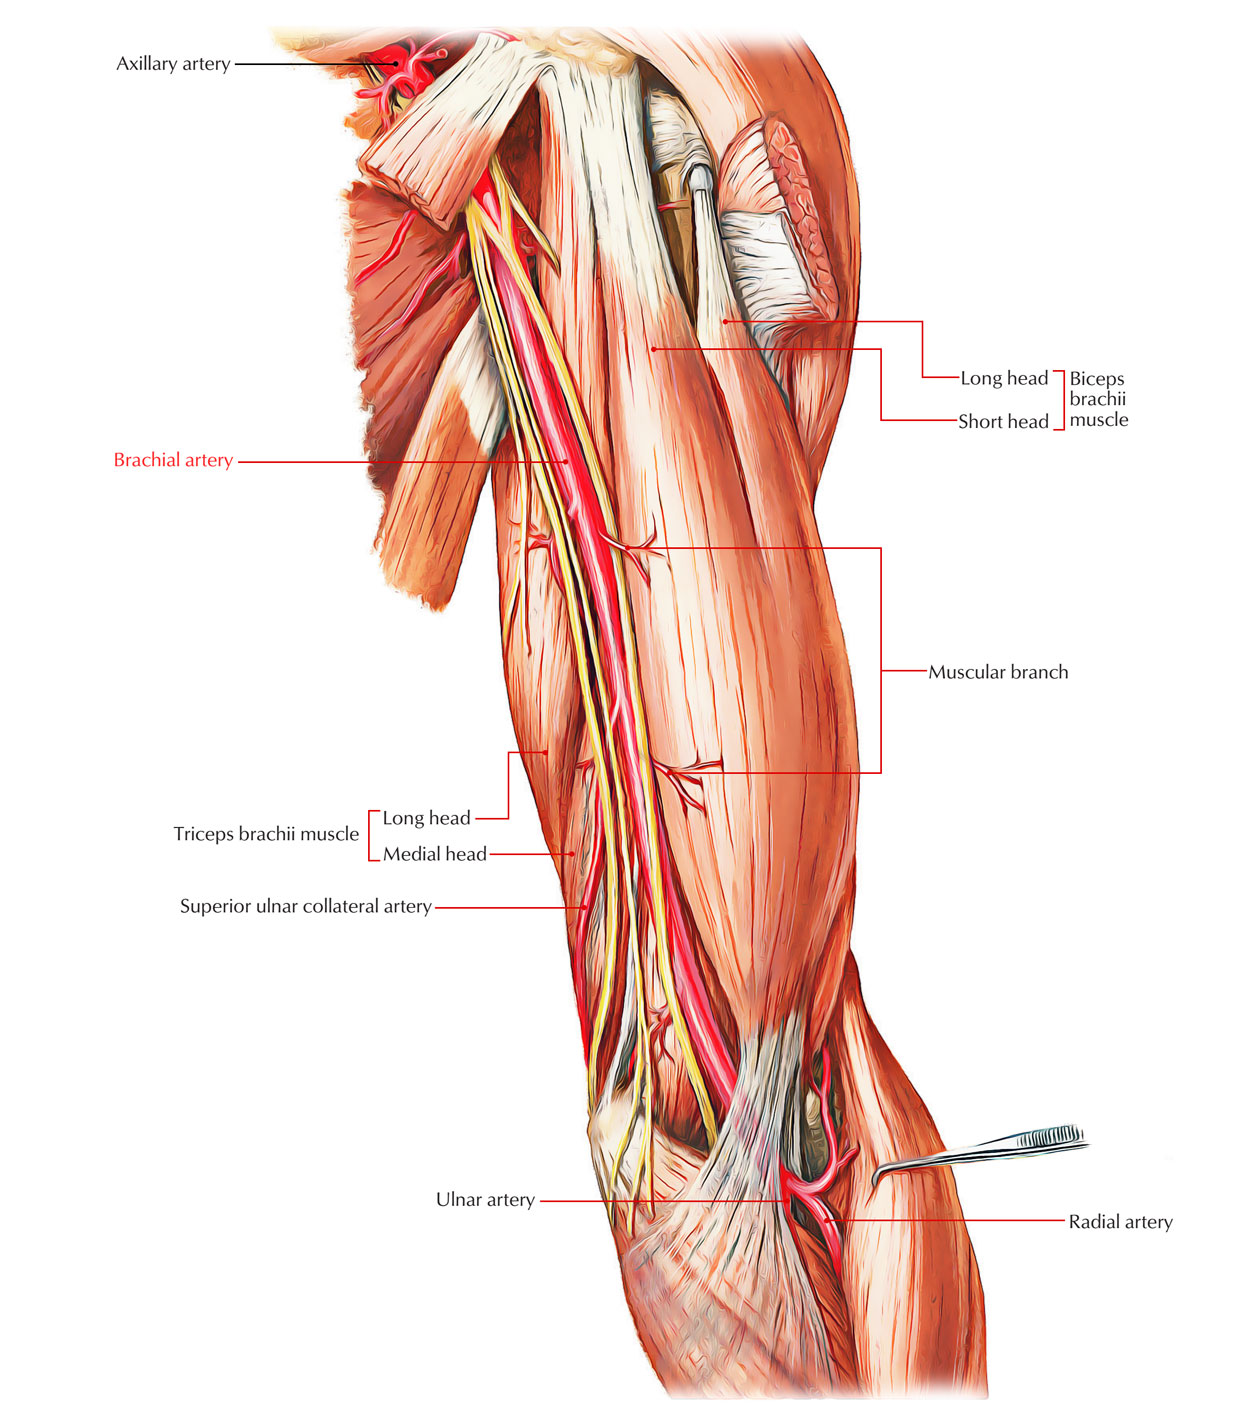 Arteries of the Upper Limb: Brachial Artery